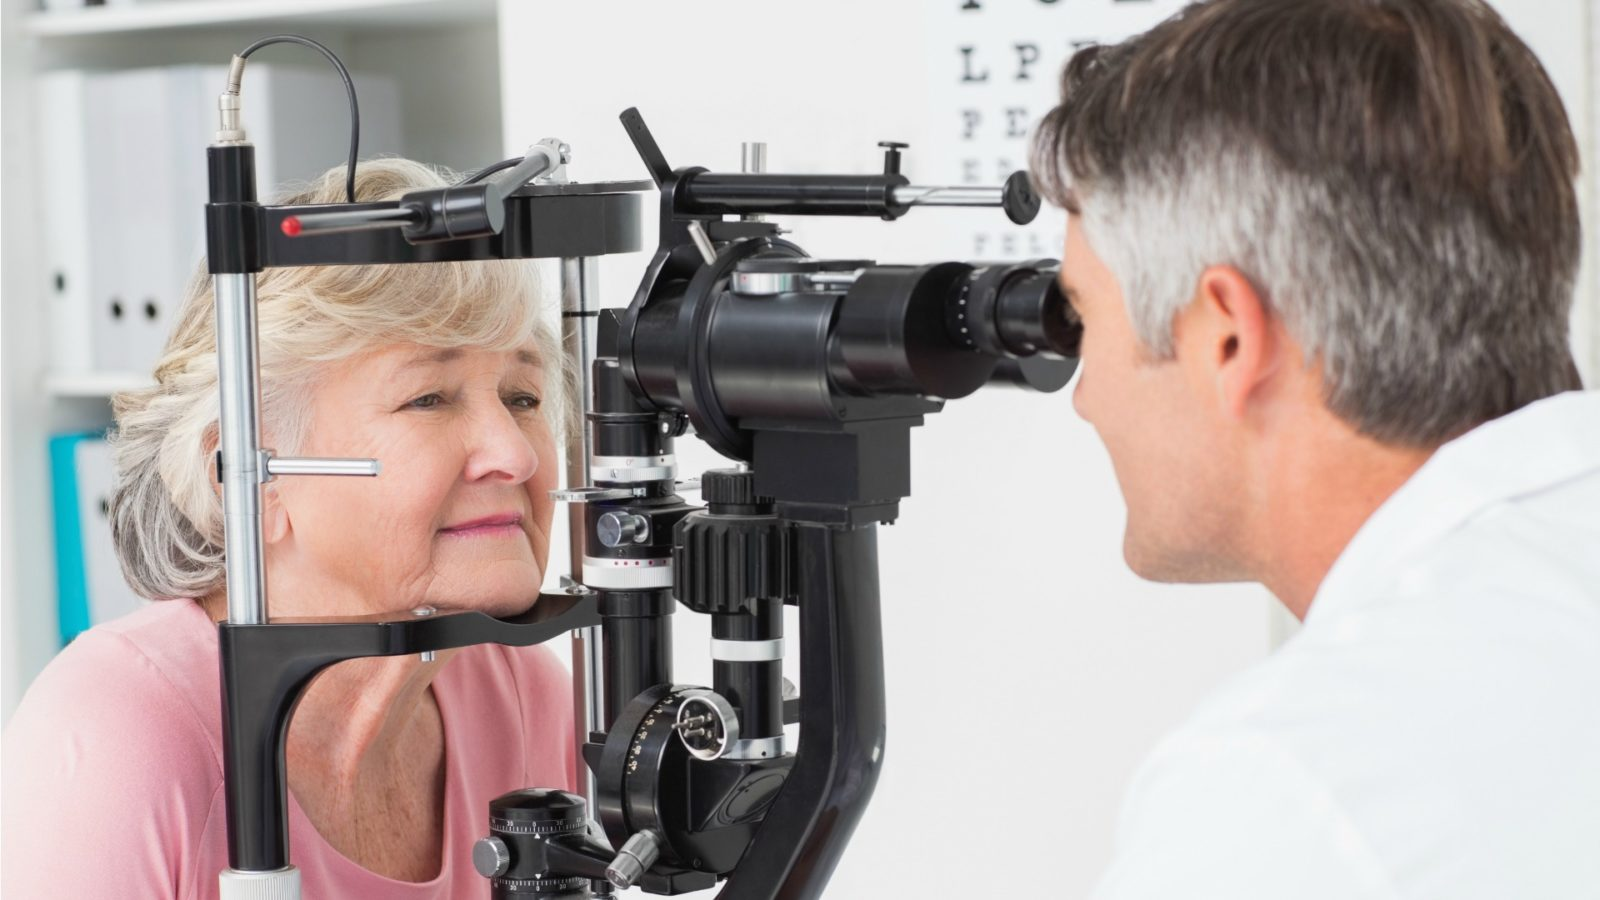 Diabetes is another serious health condition that can be picked up by an eye doctor.